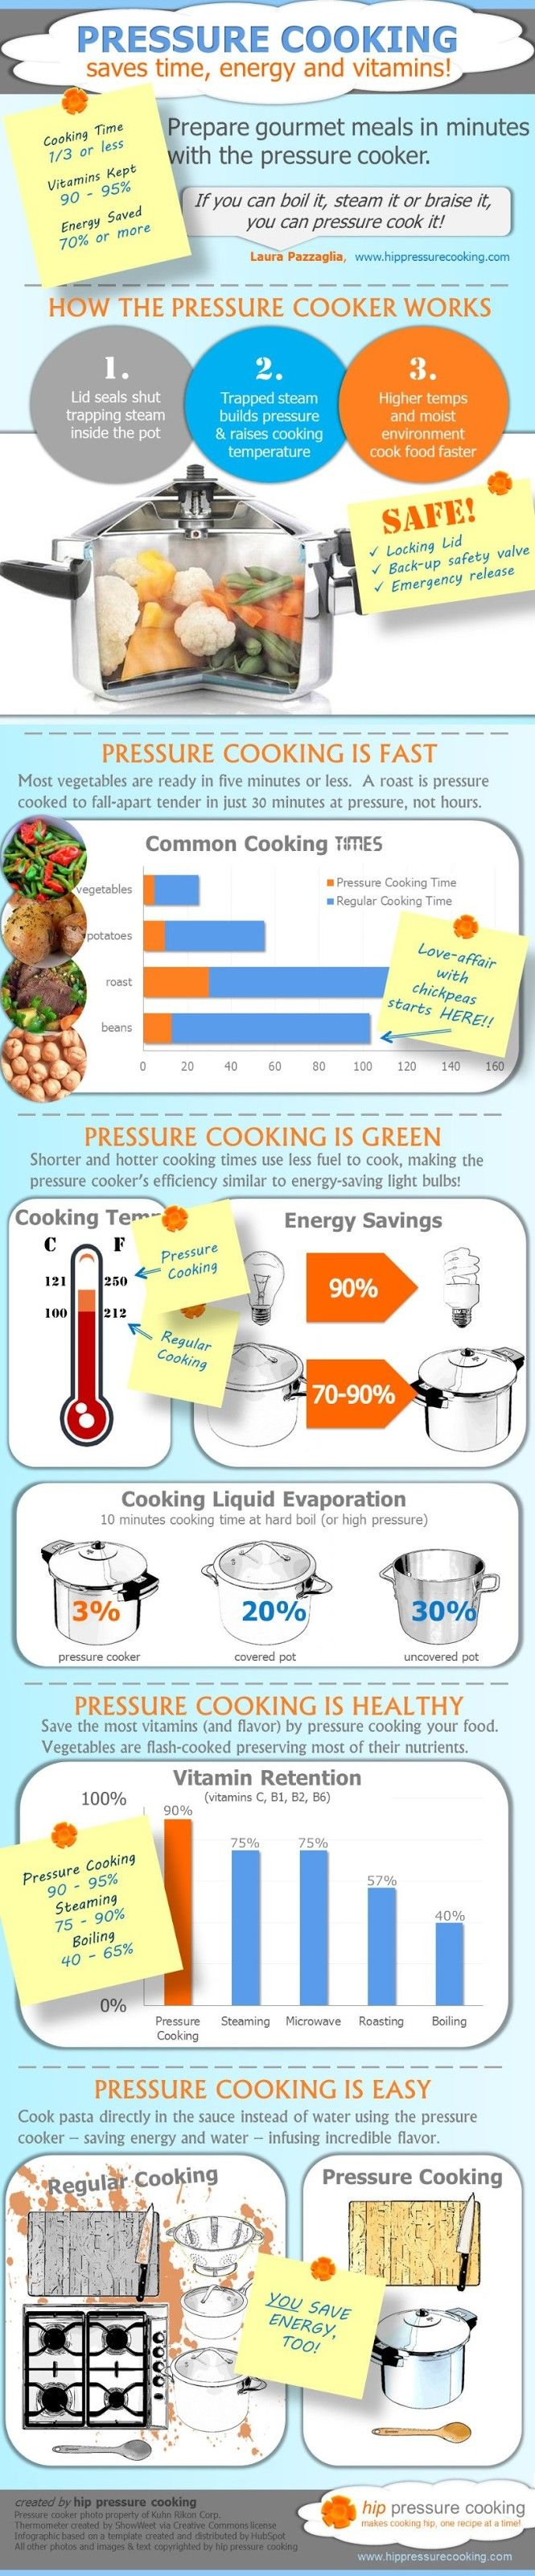 Pressure Cooker Infographic from Pressure Cooking Today